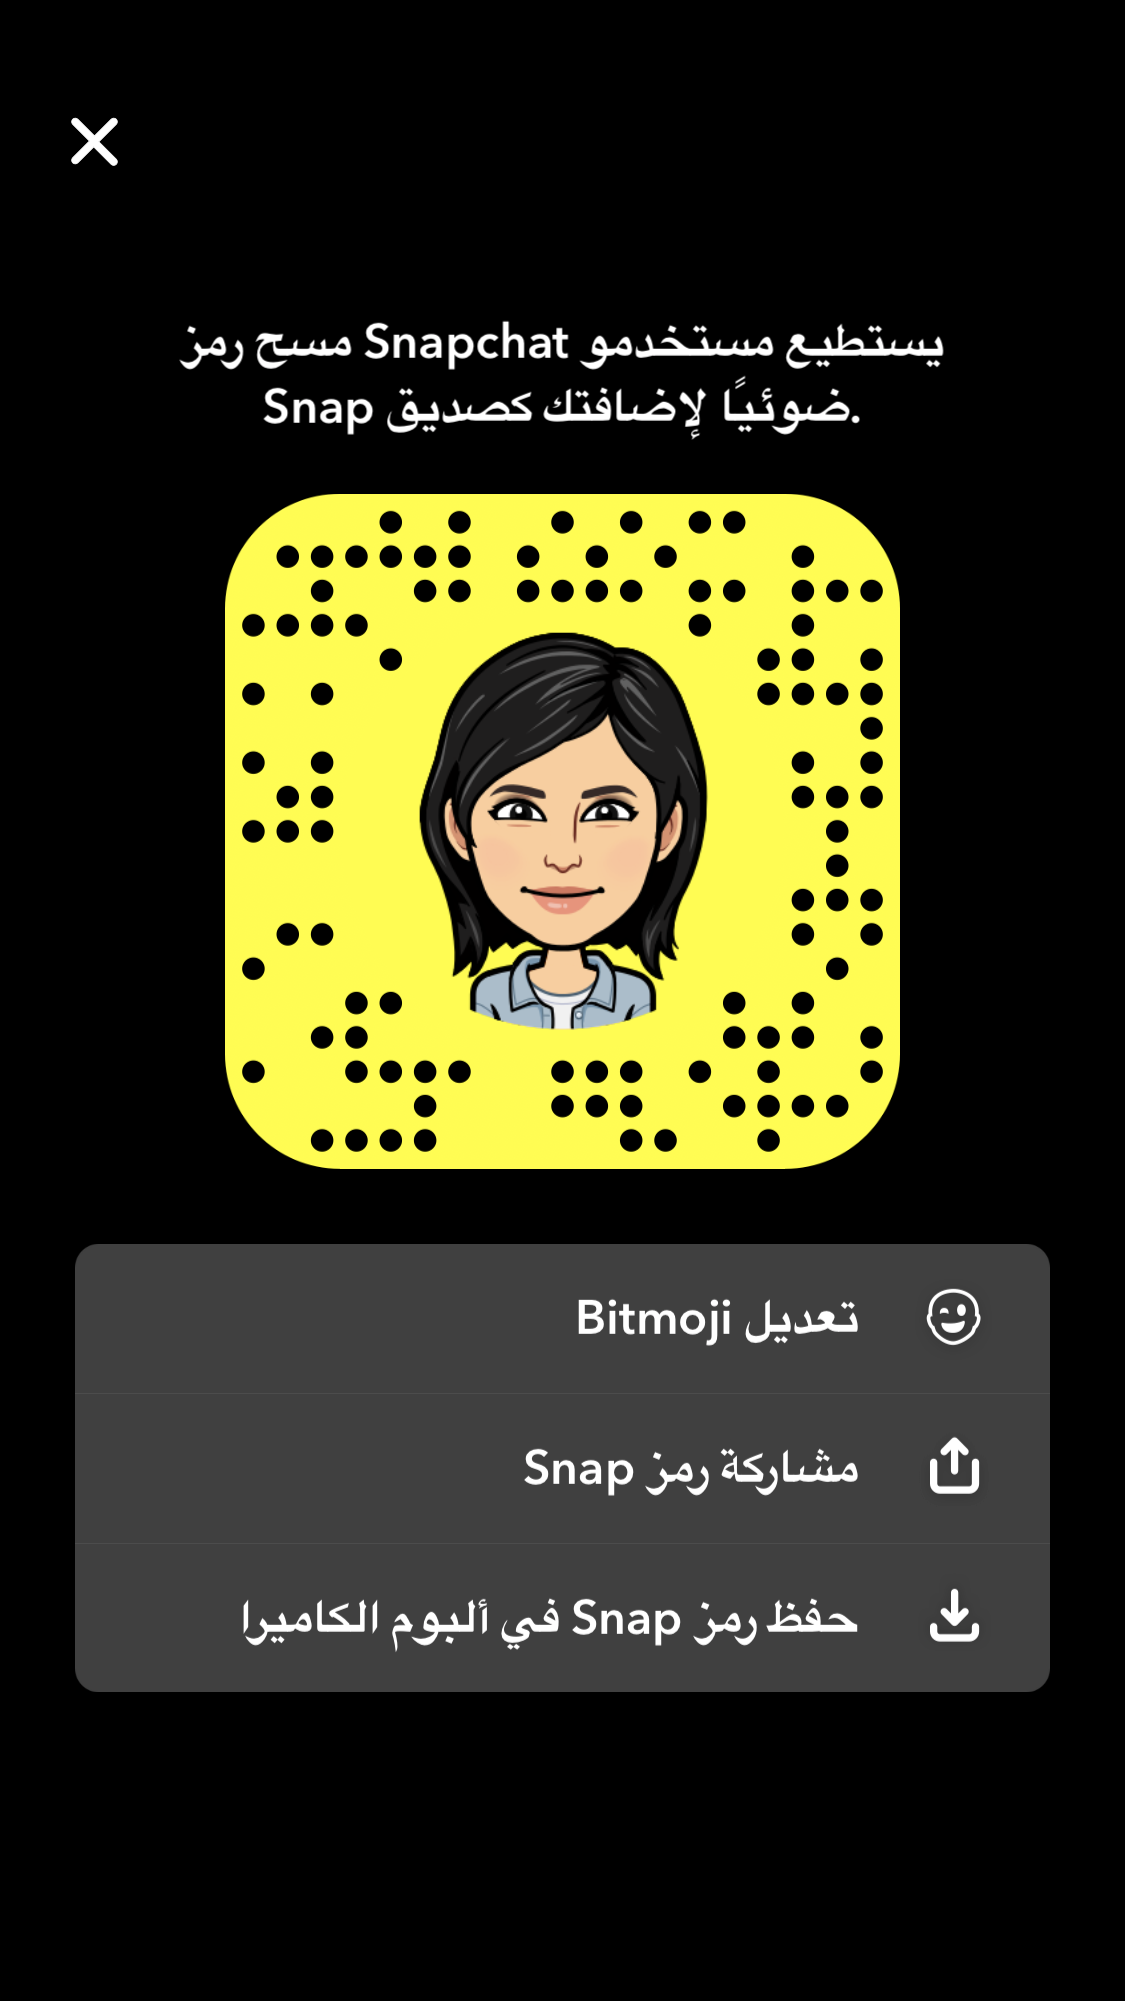 Pin by SBSCO on إعلانات مجانية Snapchat screenshot